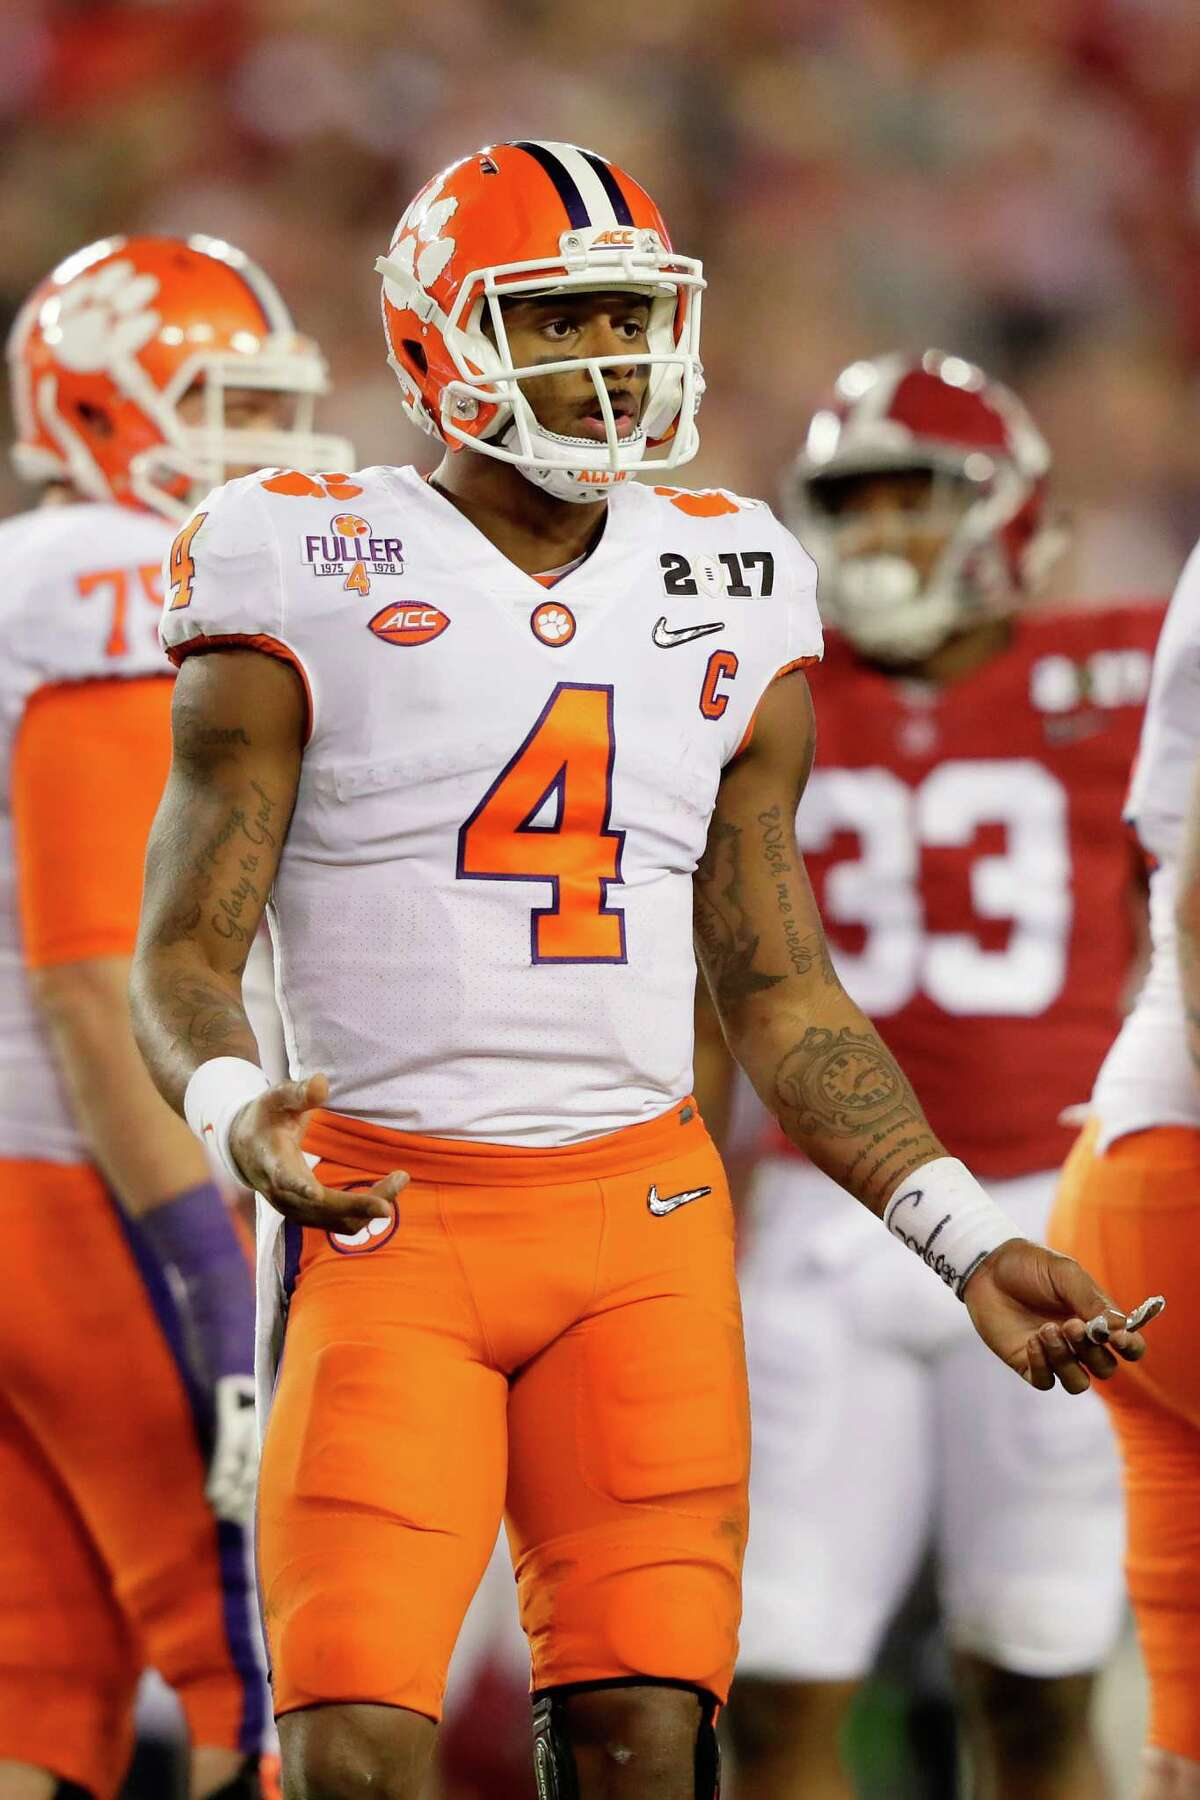 TAMPA, FL - JANUARY 09: Quarterback Deshaun Watson #4 of the Clemson Tigers reacts during the second half against the Alabama Crimson Tide in the 2017 College Football Playoff National Championship Game at Raymond James Stadium on January 9, 2017 in Tampa, Florida. (Photo by Jamie Squire/Getty Images)